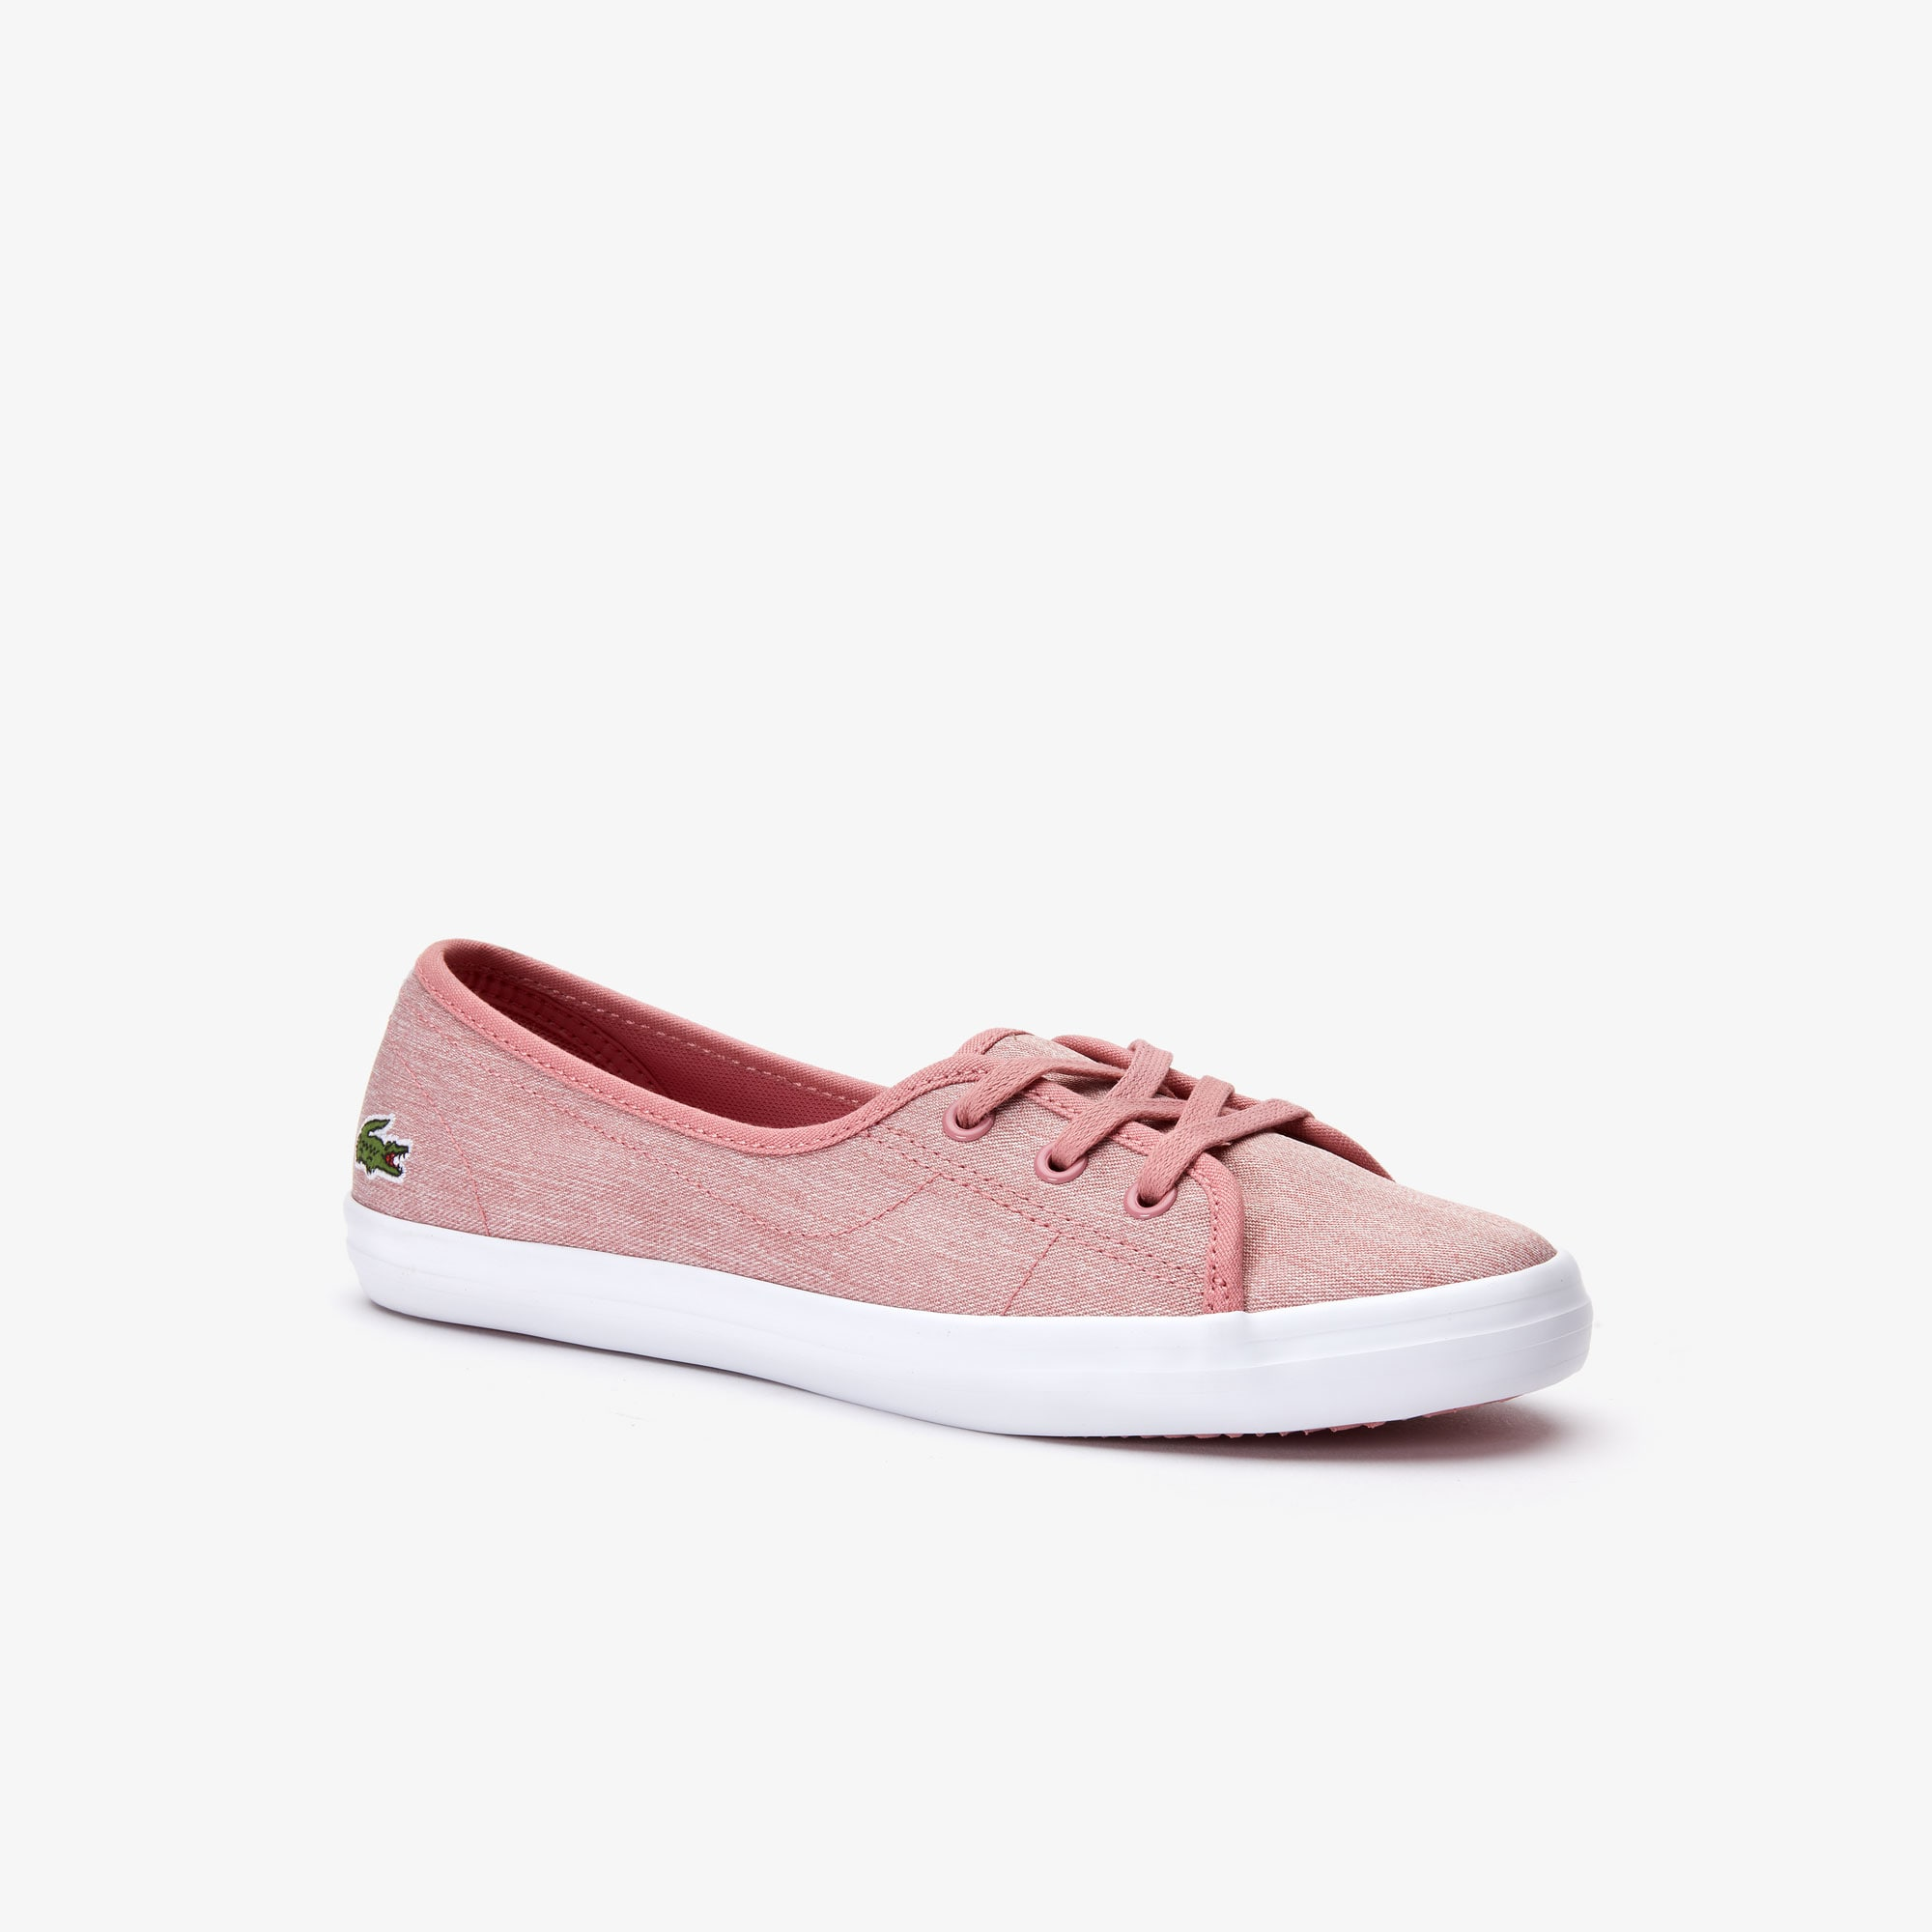 1f0a4ffdb86c4 Chaussures en toile | Chaussures Femme | LACOSTE